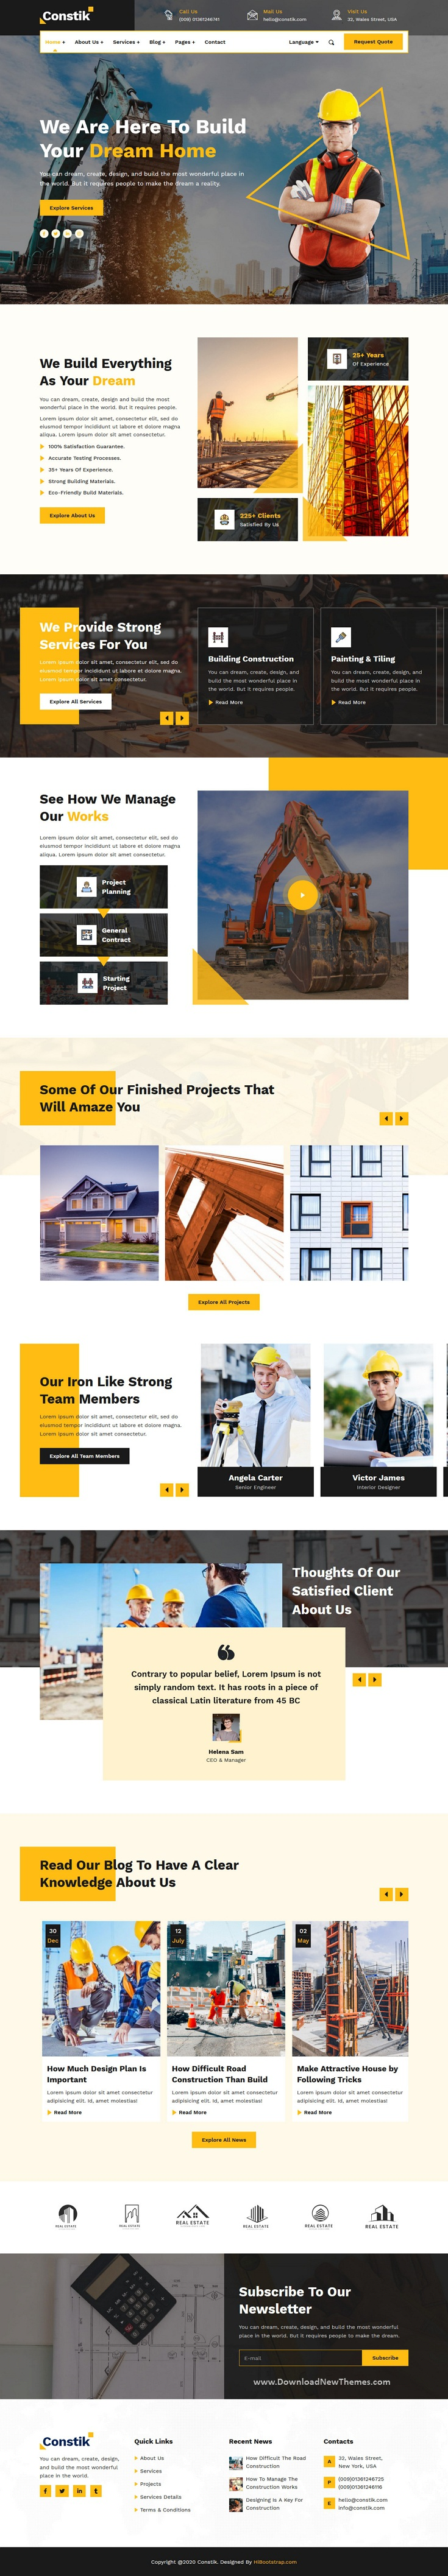 Construction & Building Company Bootstrap Template